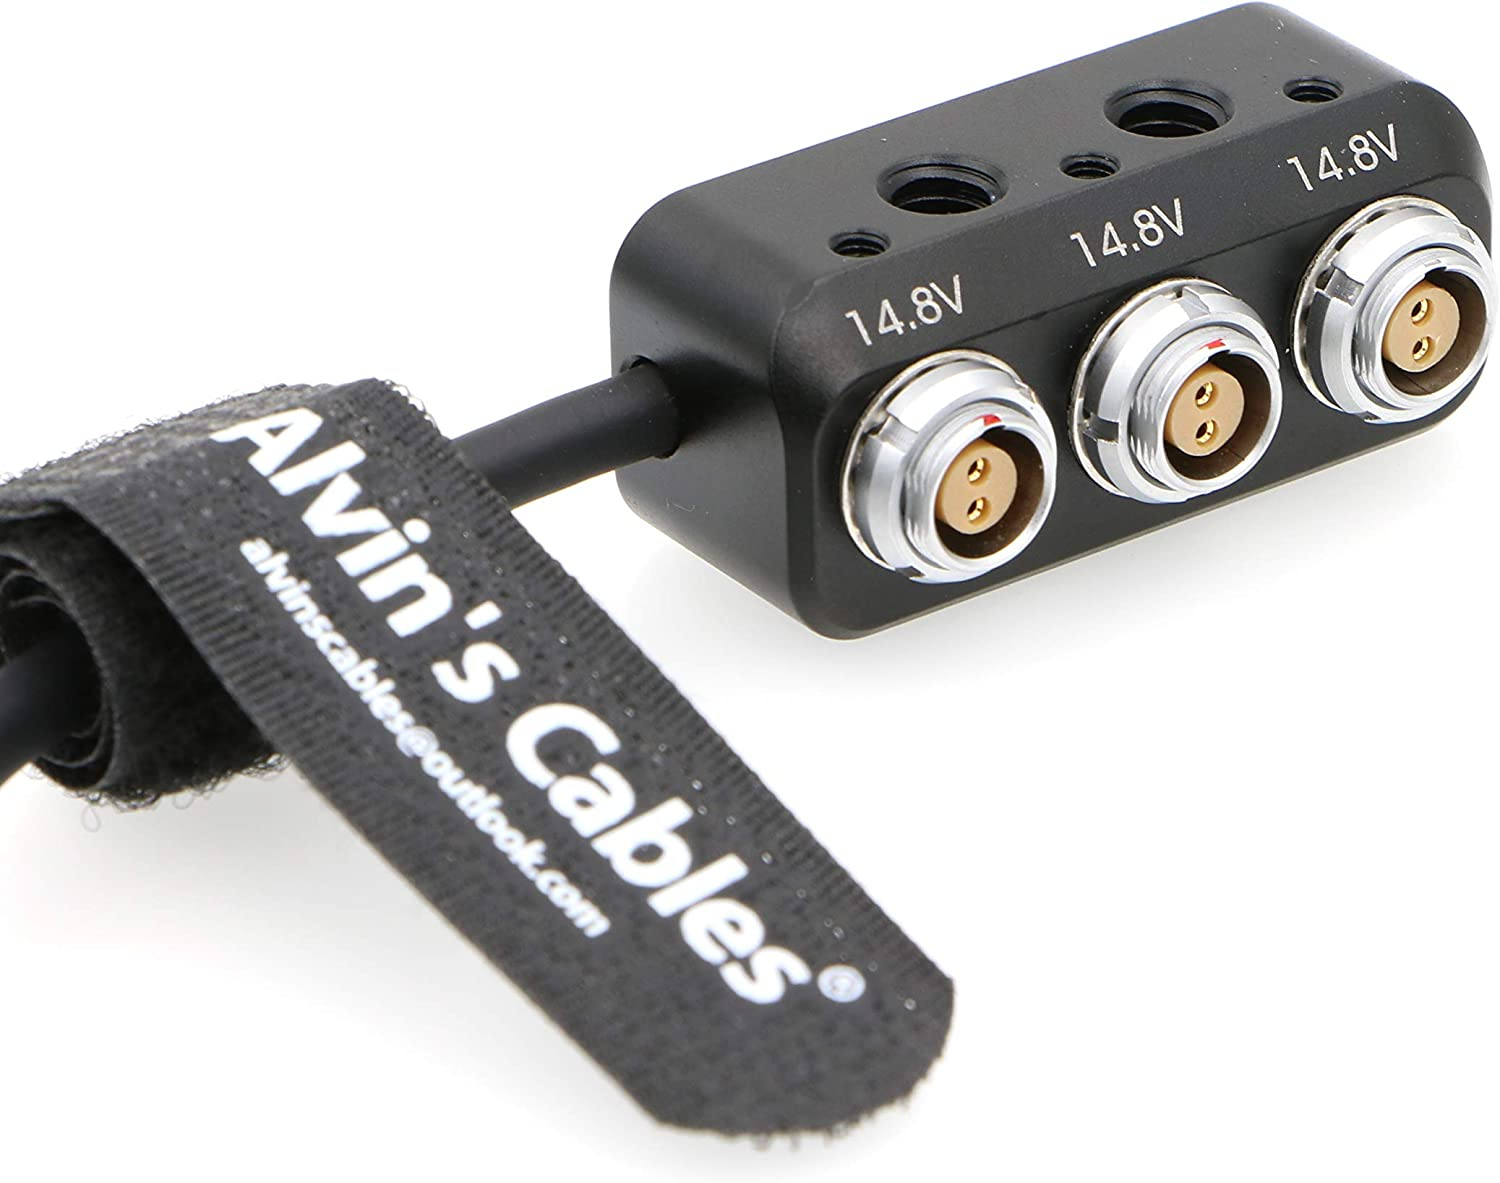 Alvins Cables 1 to 3 Mini Power Splitter Box Cable 2 Pin Male to 3 2 Pin Female Box for ARRI RED Cameras Teradek